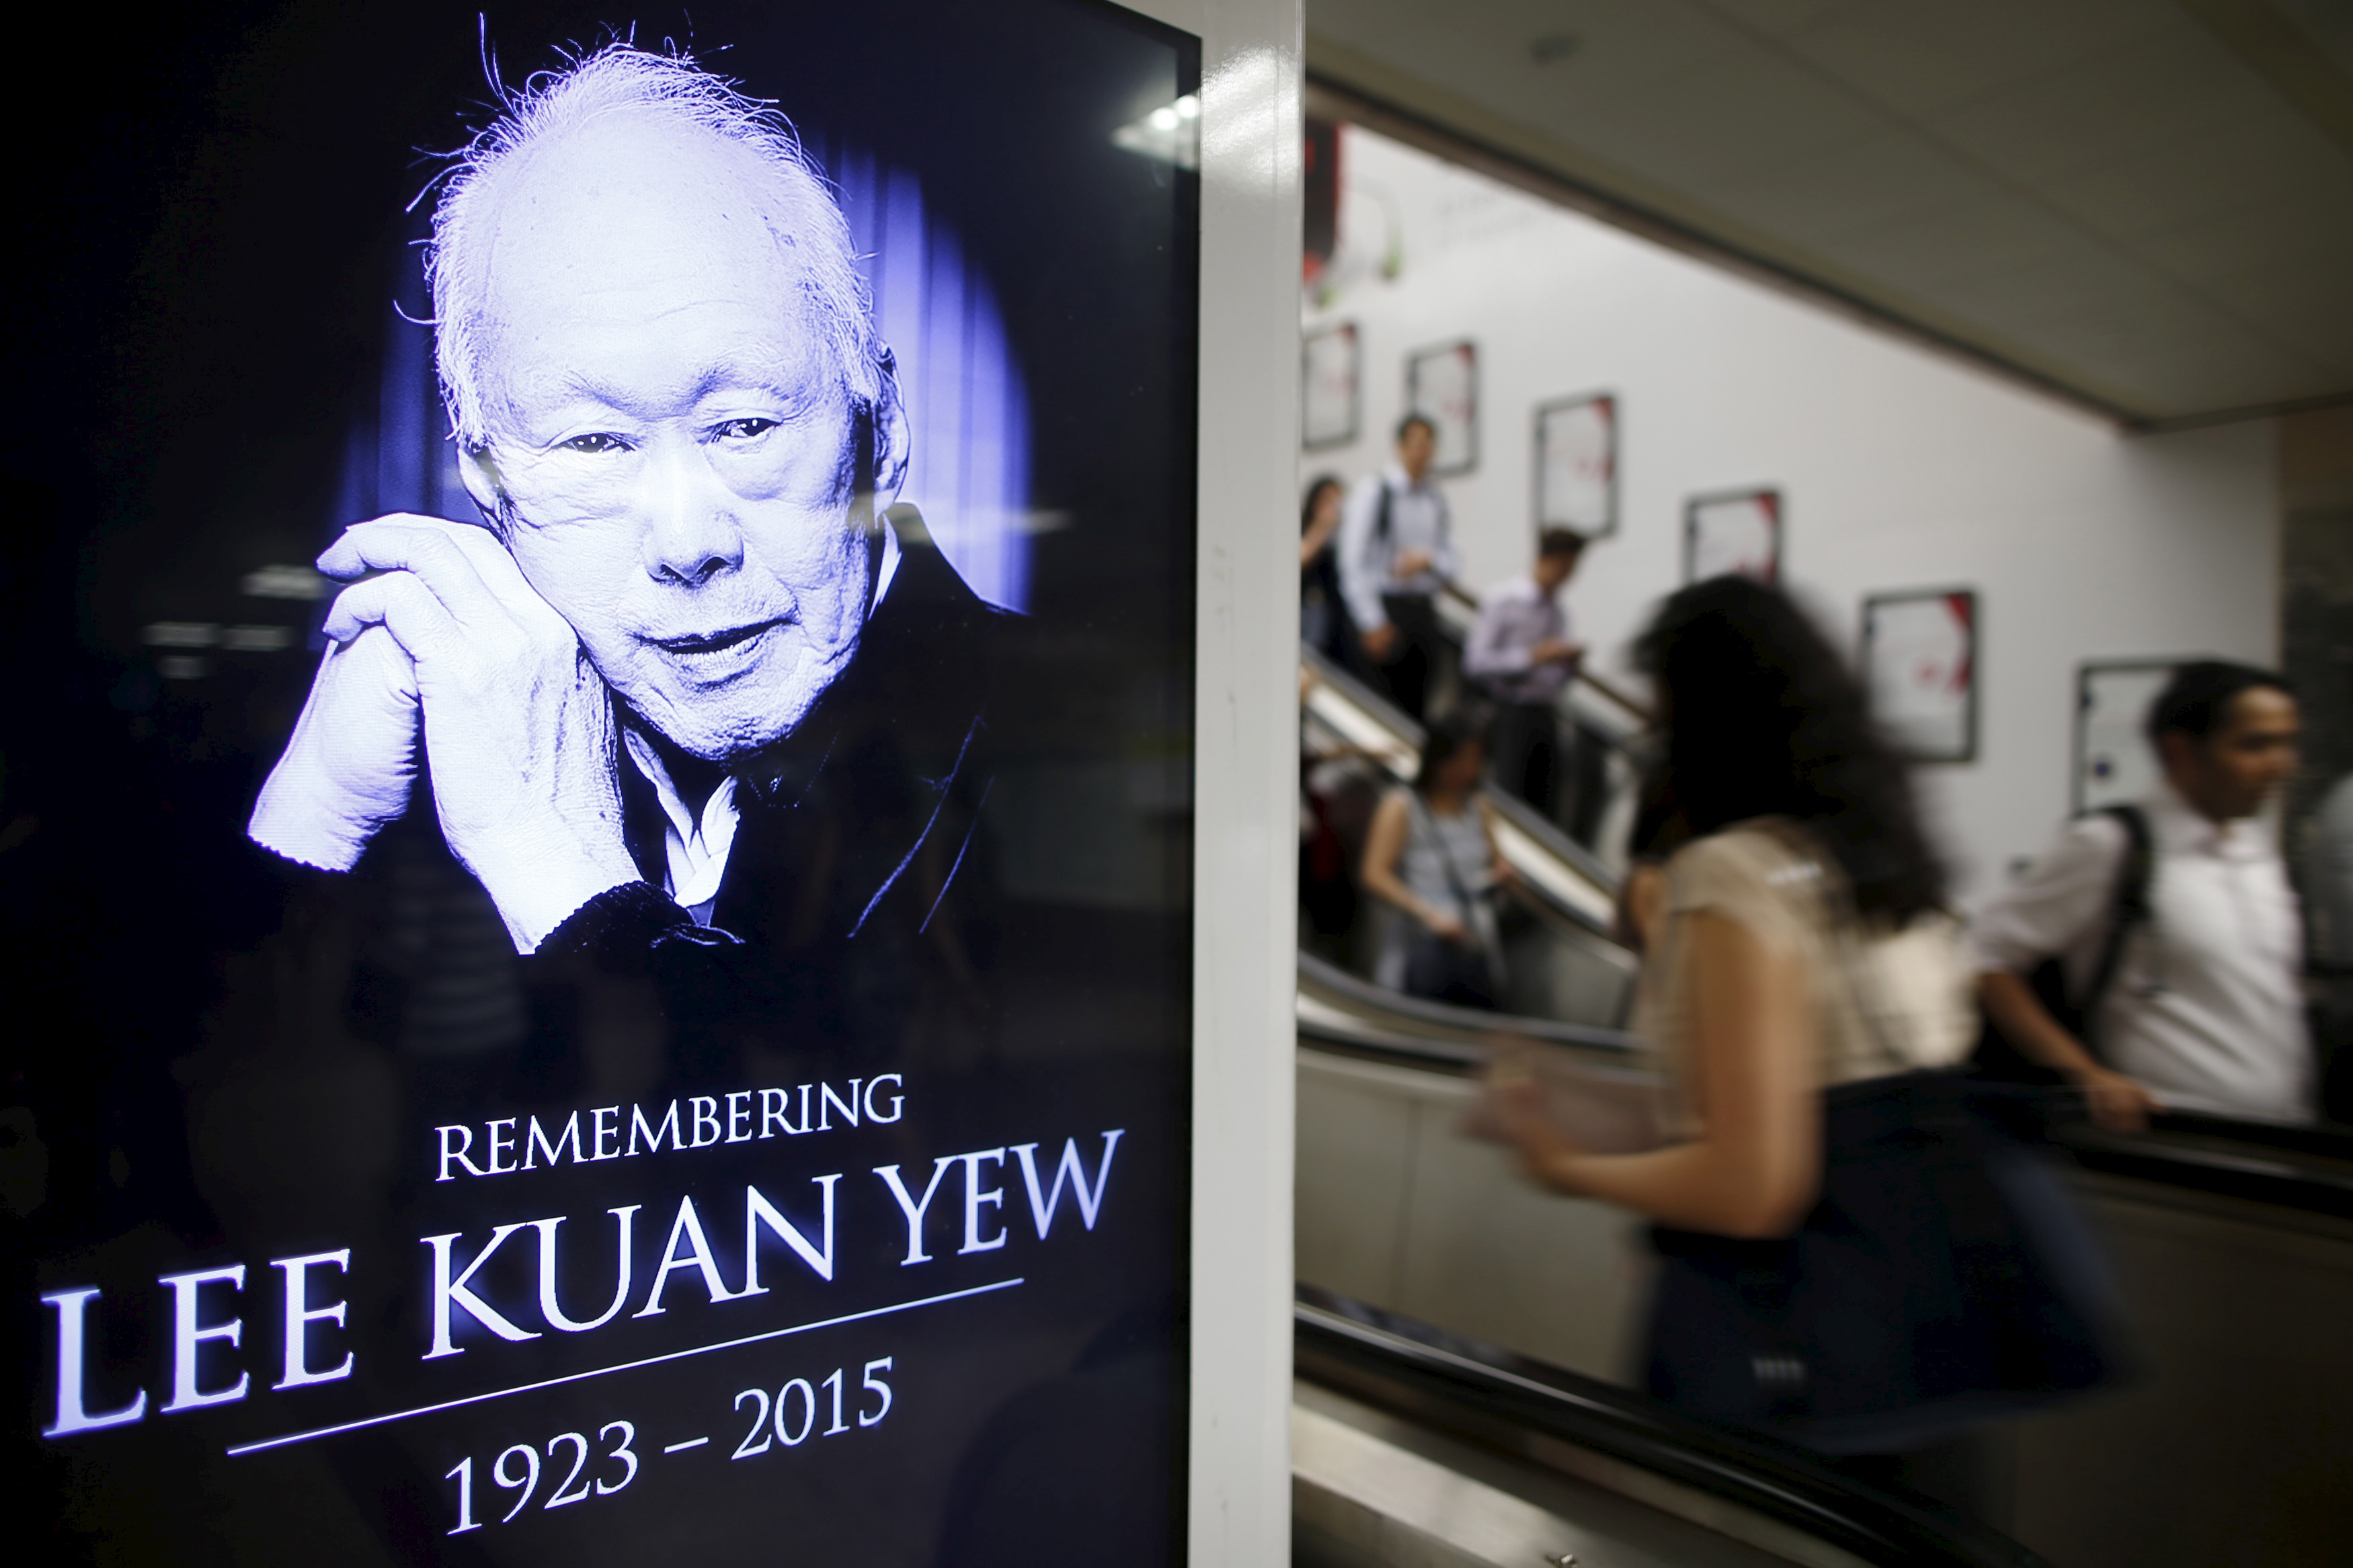 Commuters pass by a signboard displaying a tribute to the late first prime minister Lee Kuan Yew in a train station at the central business district in Singapore